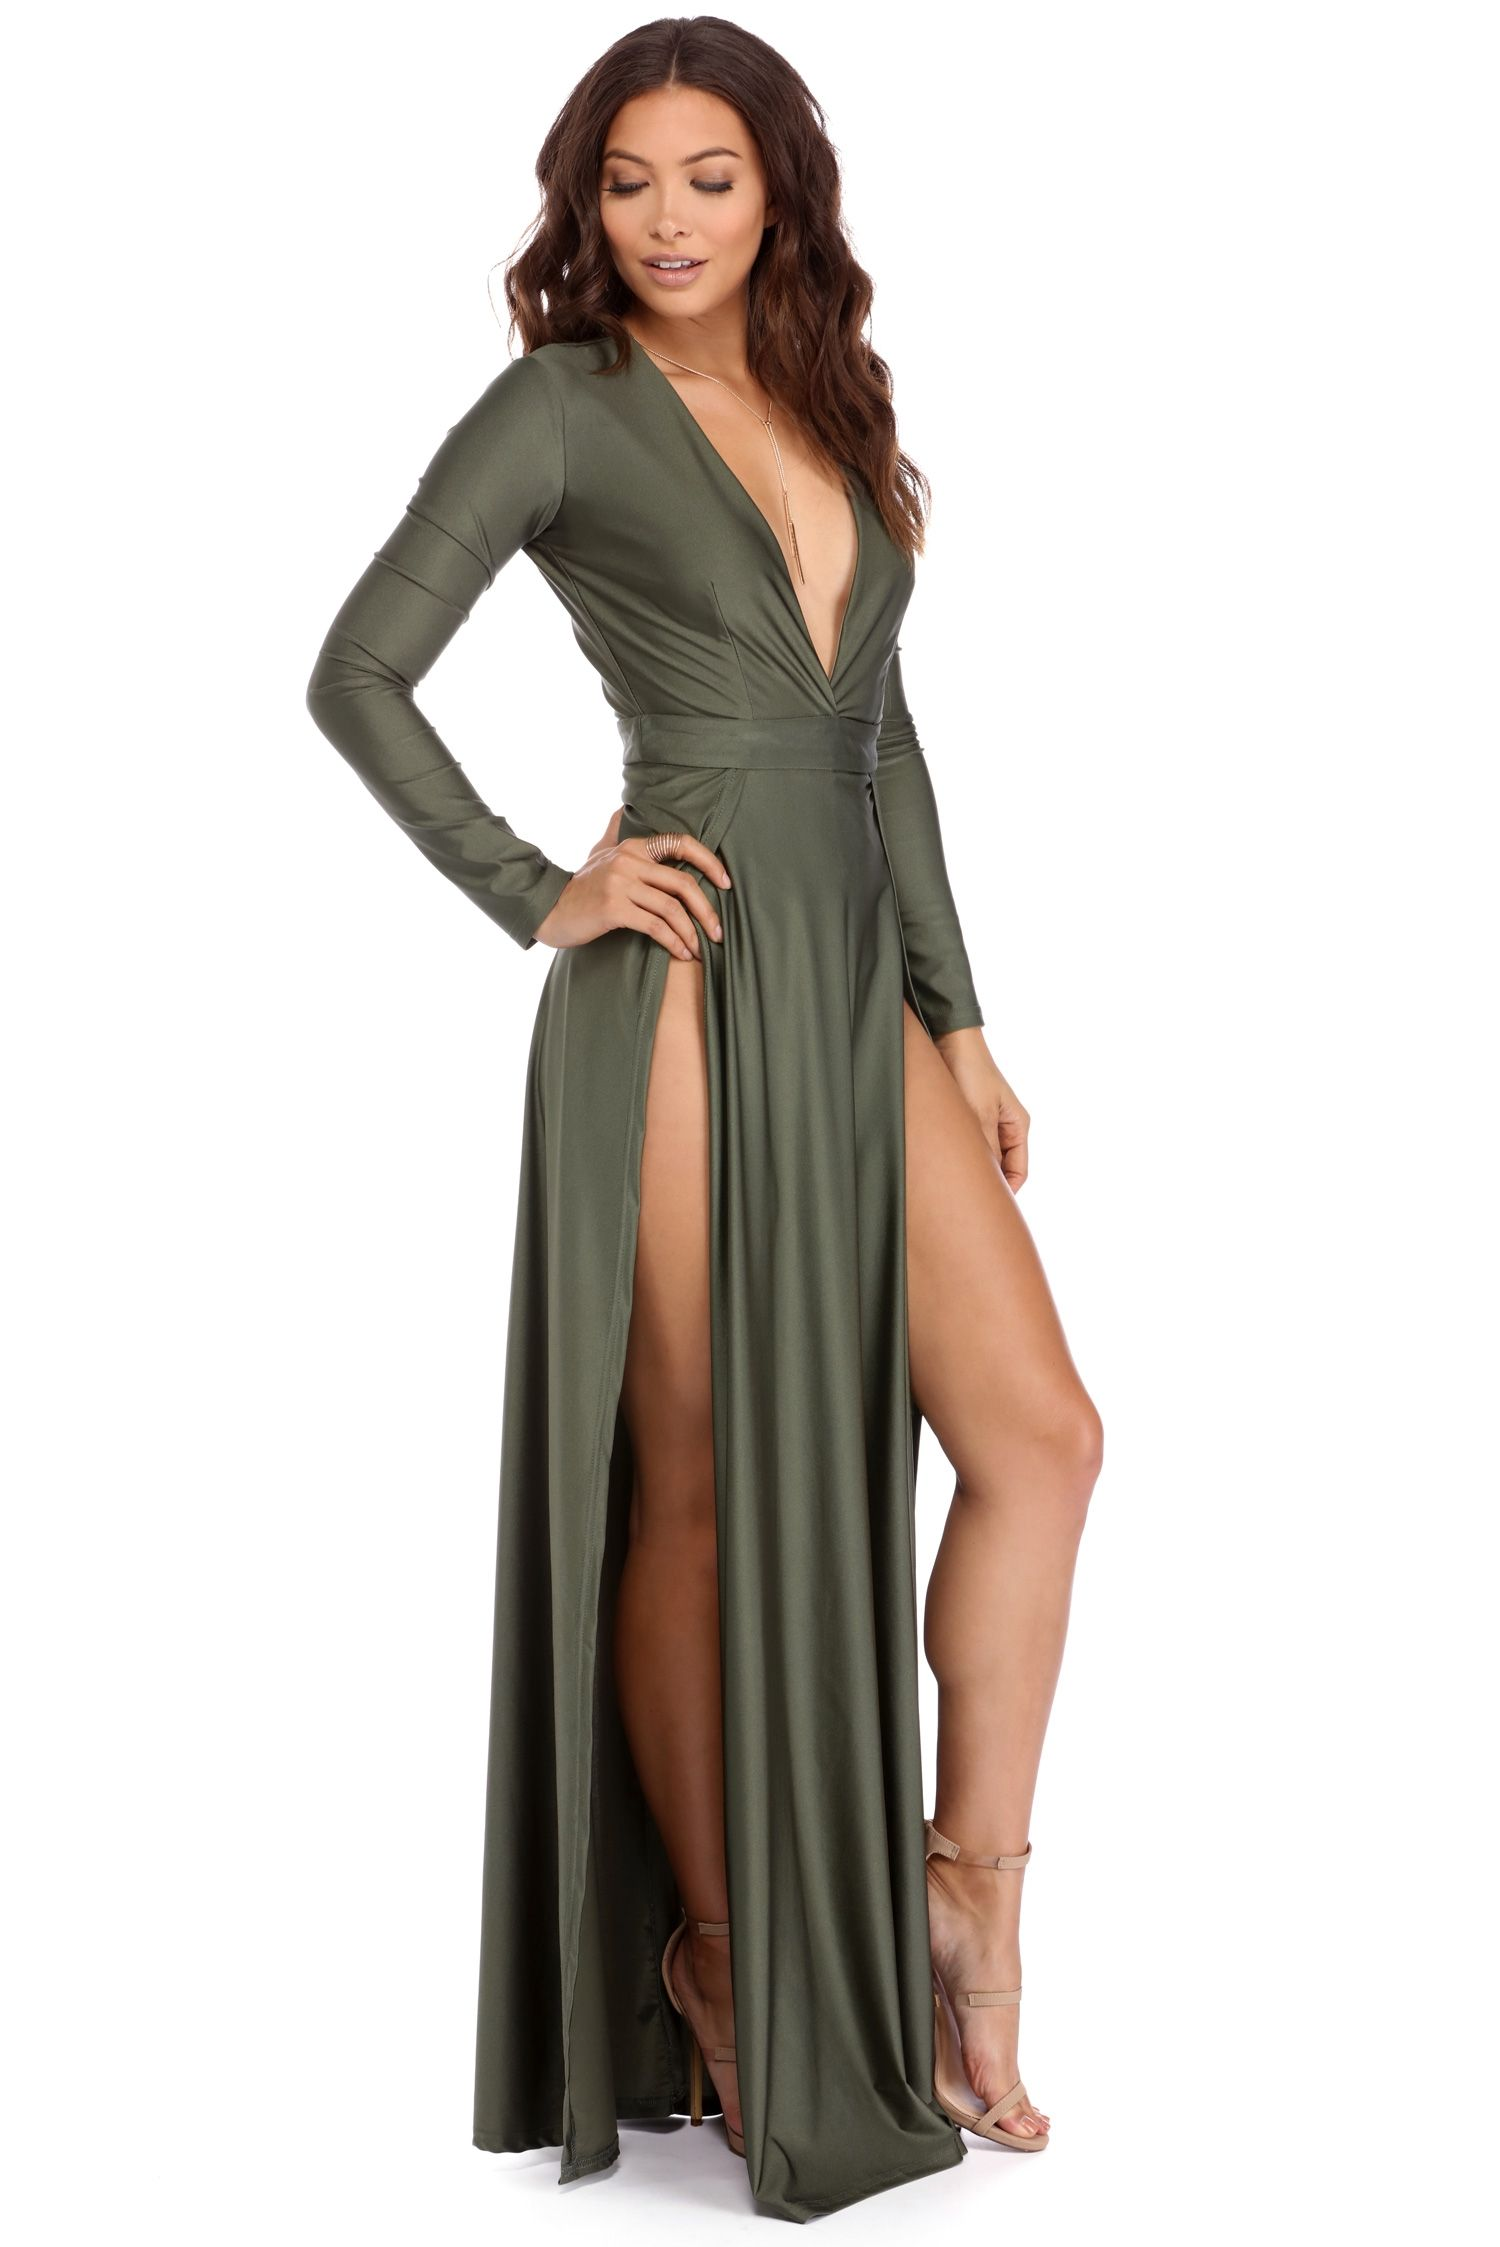 89d391838168 FINAL SALE -Desiree Olive Double Slit Dress | Red Carpet Ready ...